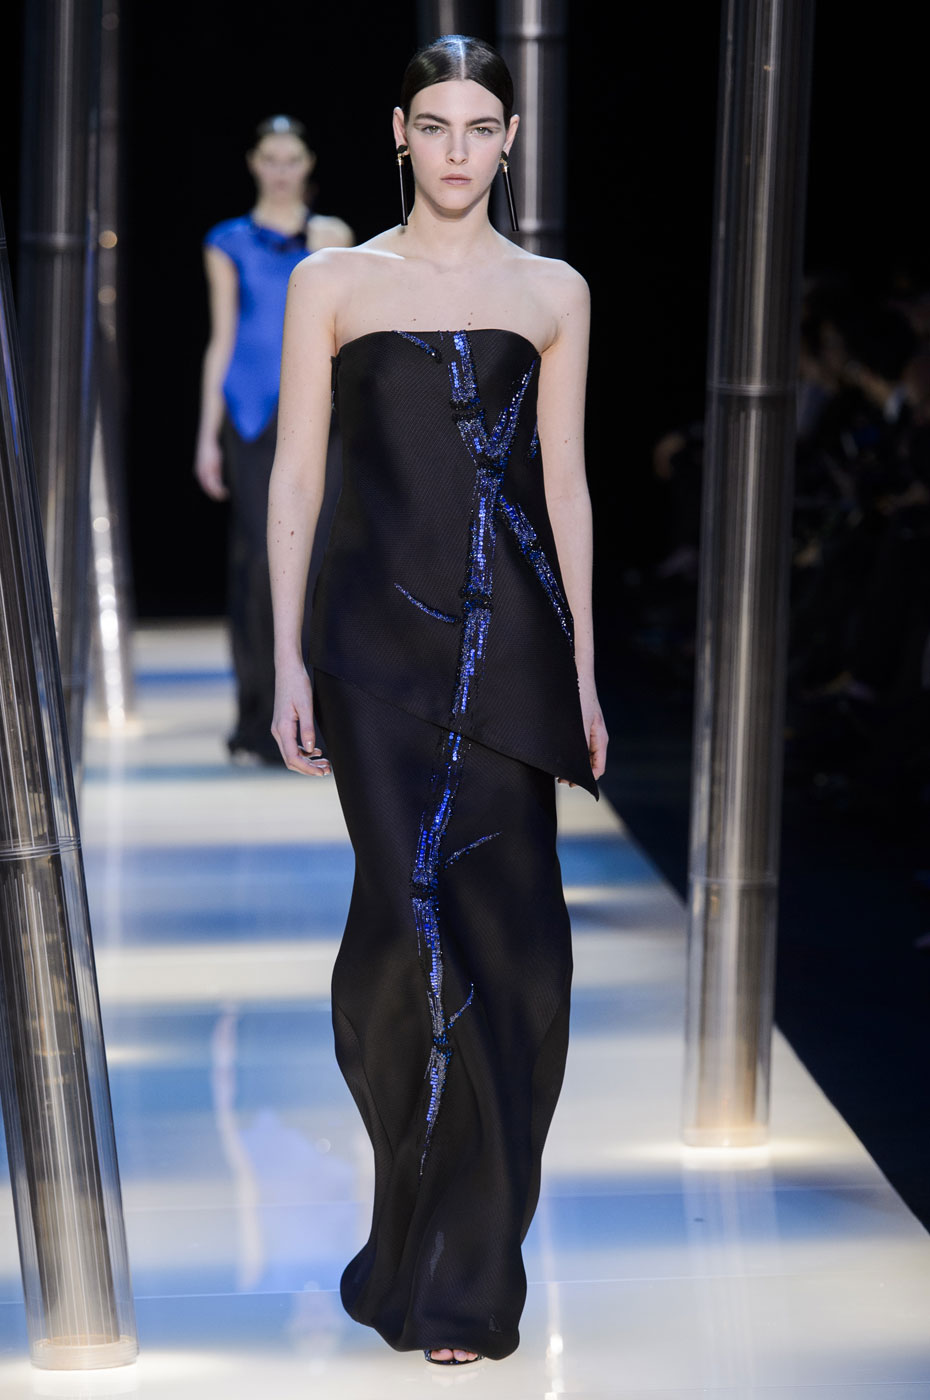 Giorgio-armani-Prive-fashion-runway-show-haute-couture-paris-spring-2015-the-impression-123